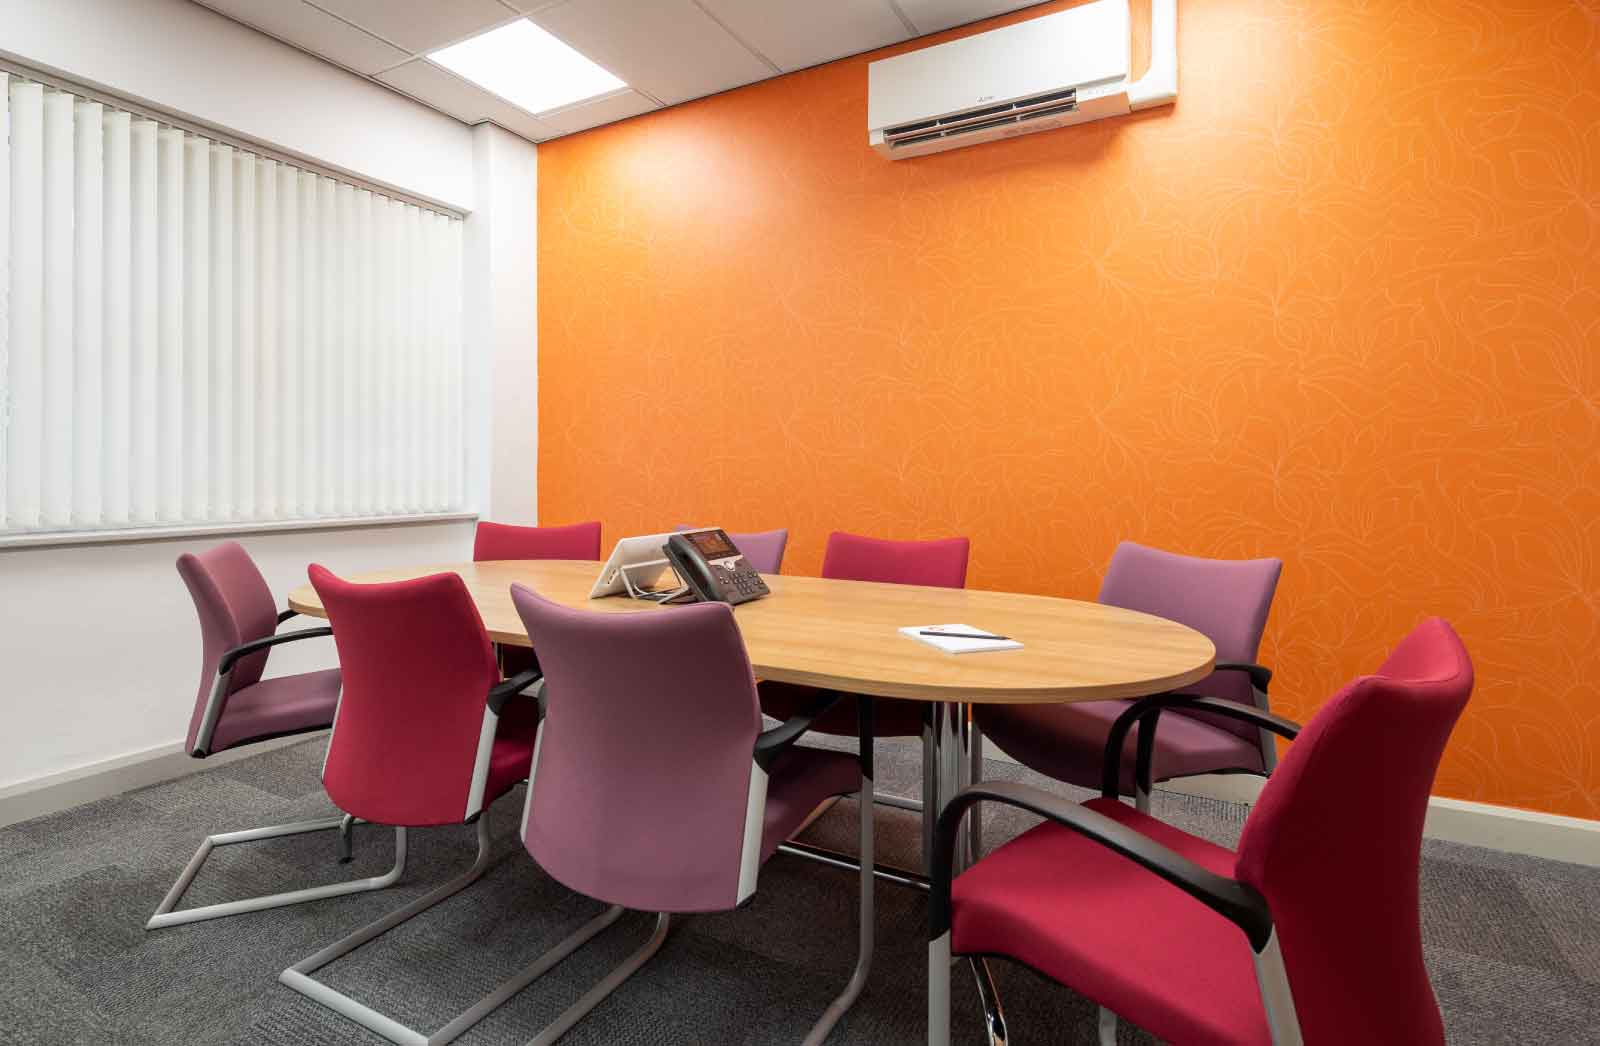 Gordons-Office-Fit-Out-Bradford-Meeting-room-design